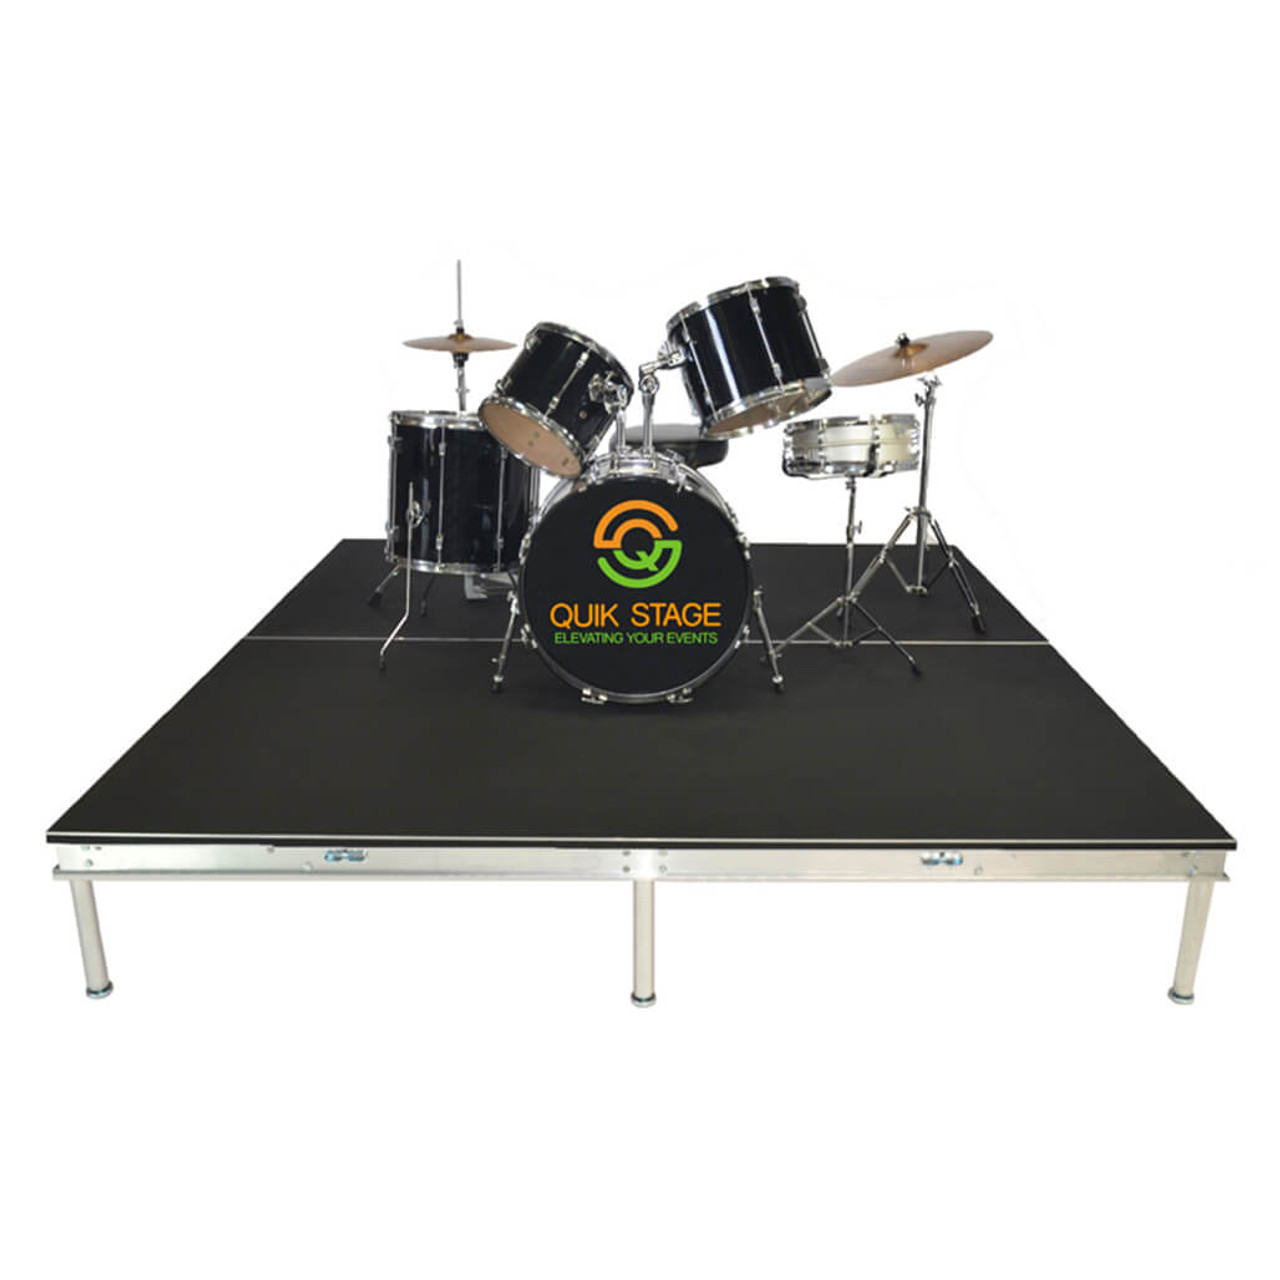 Quik Stage 4' x 8' High Portable Stage Package with Black Polyvinyl Non-Skid Surface. Additional Heights and Surfaces Available - Drum Riser without skirting